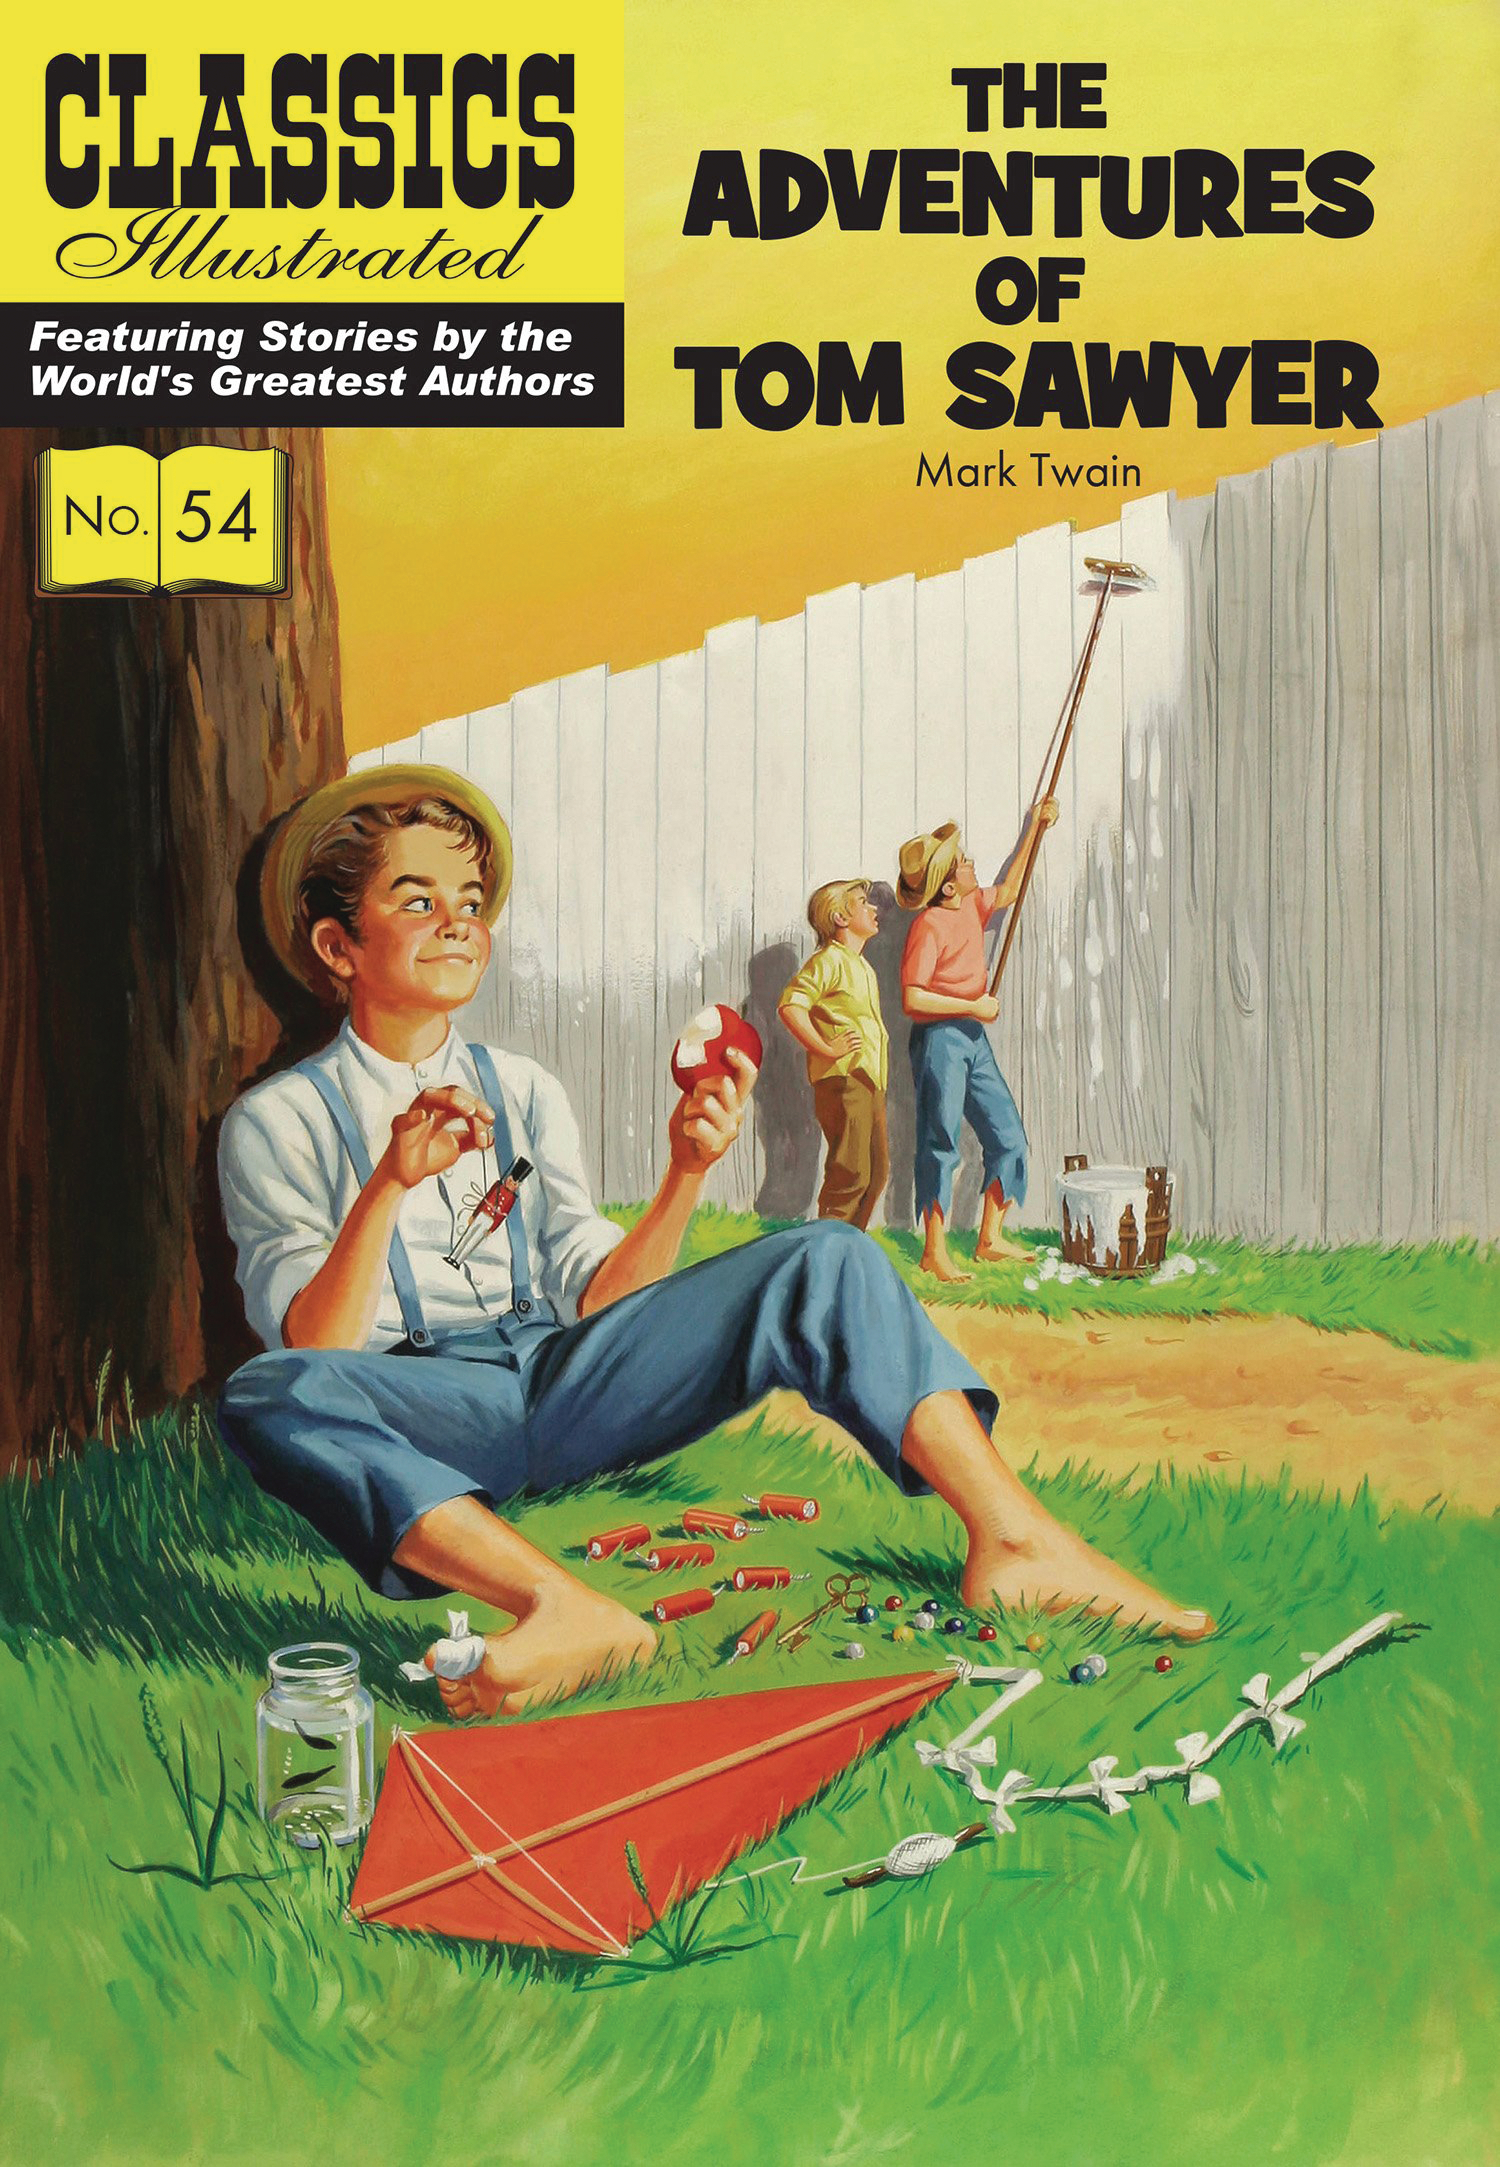 CLASSIC ILLUSTRATED TP ADV TOM SAWYER